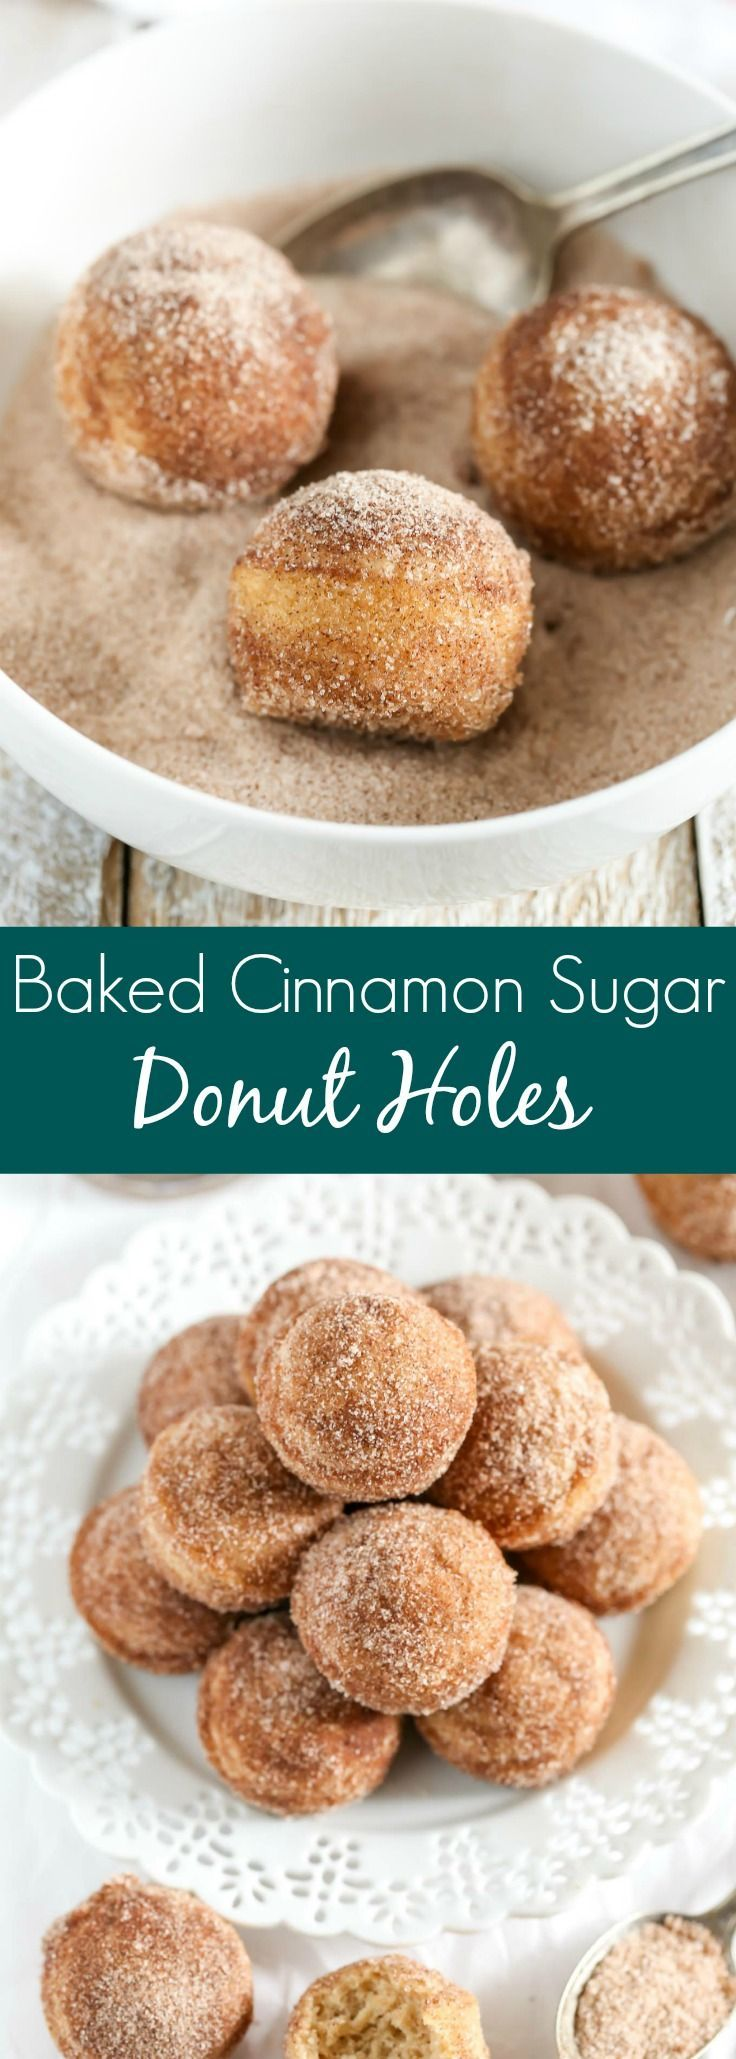 These Baked Cinnamon Sugar Donut Holes are easy to make and perfect for breakfast! (Christmas Bake Cinnamon)